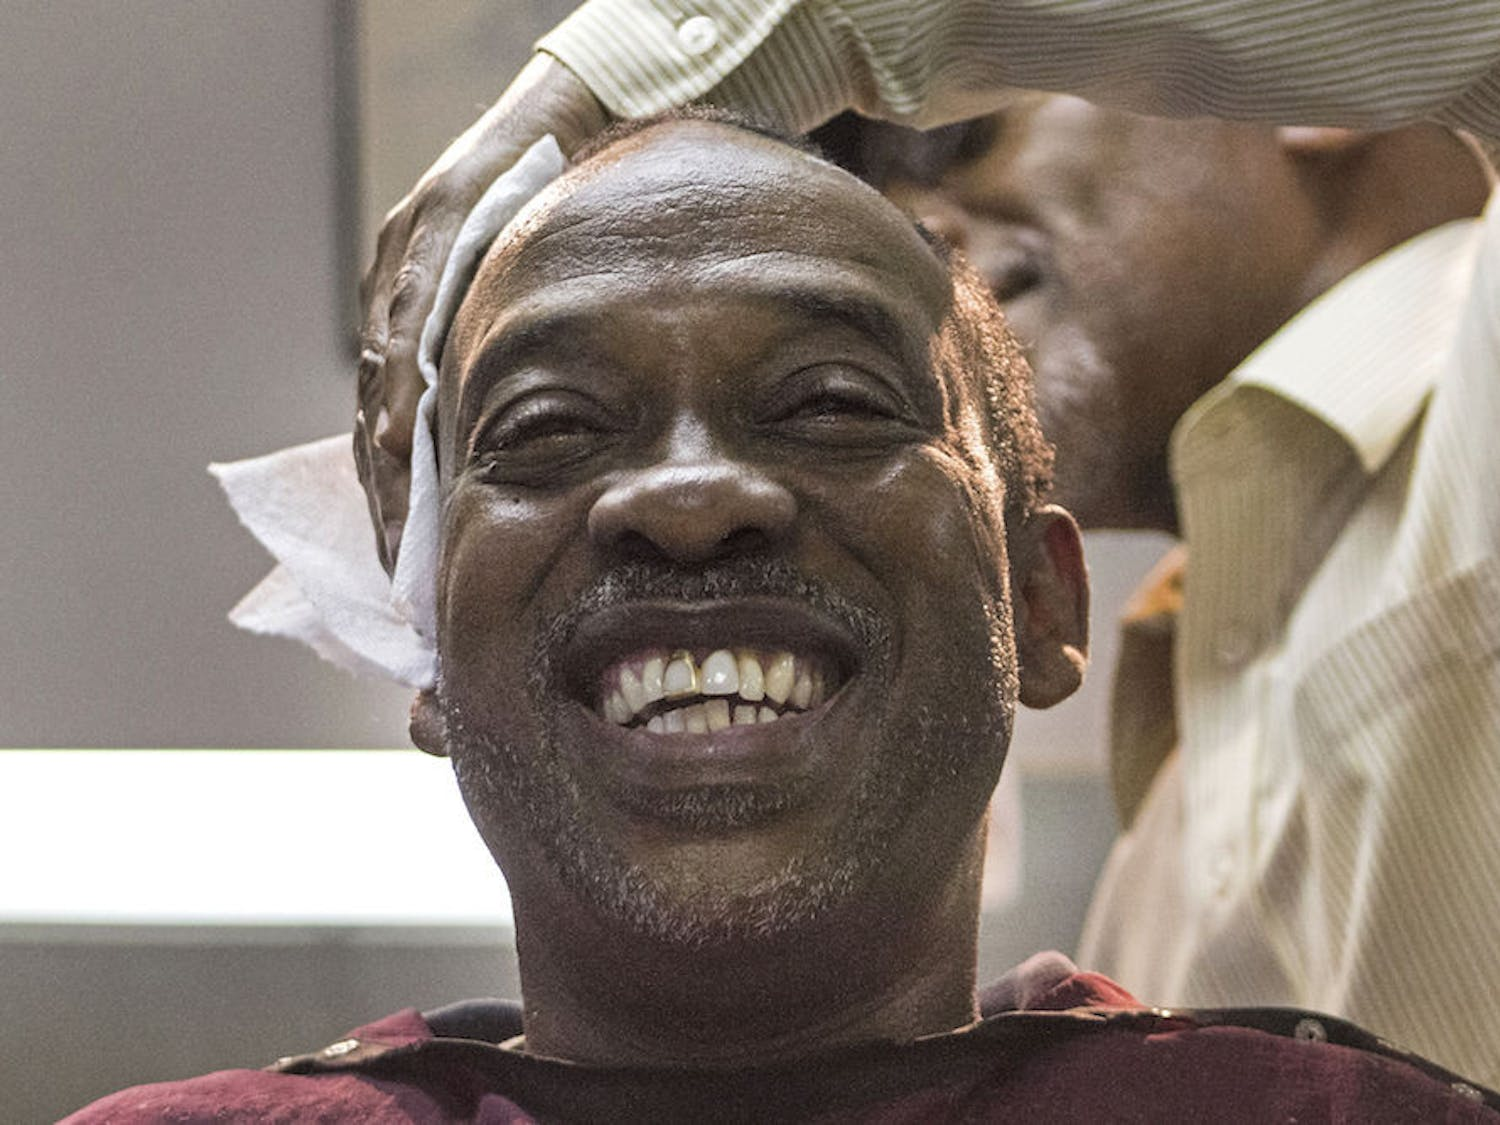 Vincent Tate, 51, receives a haircut Tuesday from Edward Young, 64, at the Clean Cut Barber Shop on Northwest Fifth Avenue. Tate moved from Alabama to Gainesville for a fresh start, and he has worked for the Alachua County School Board for 25 years.